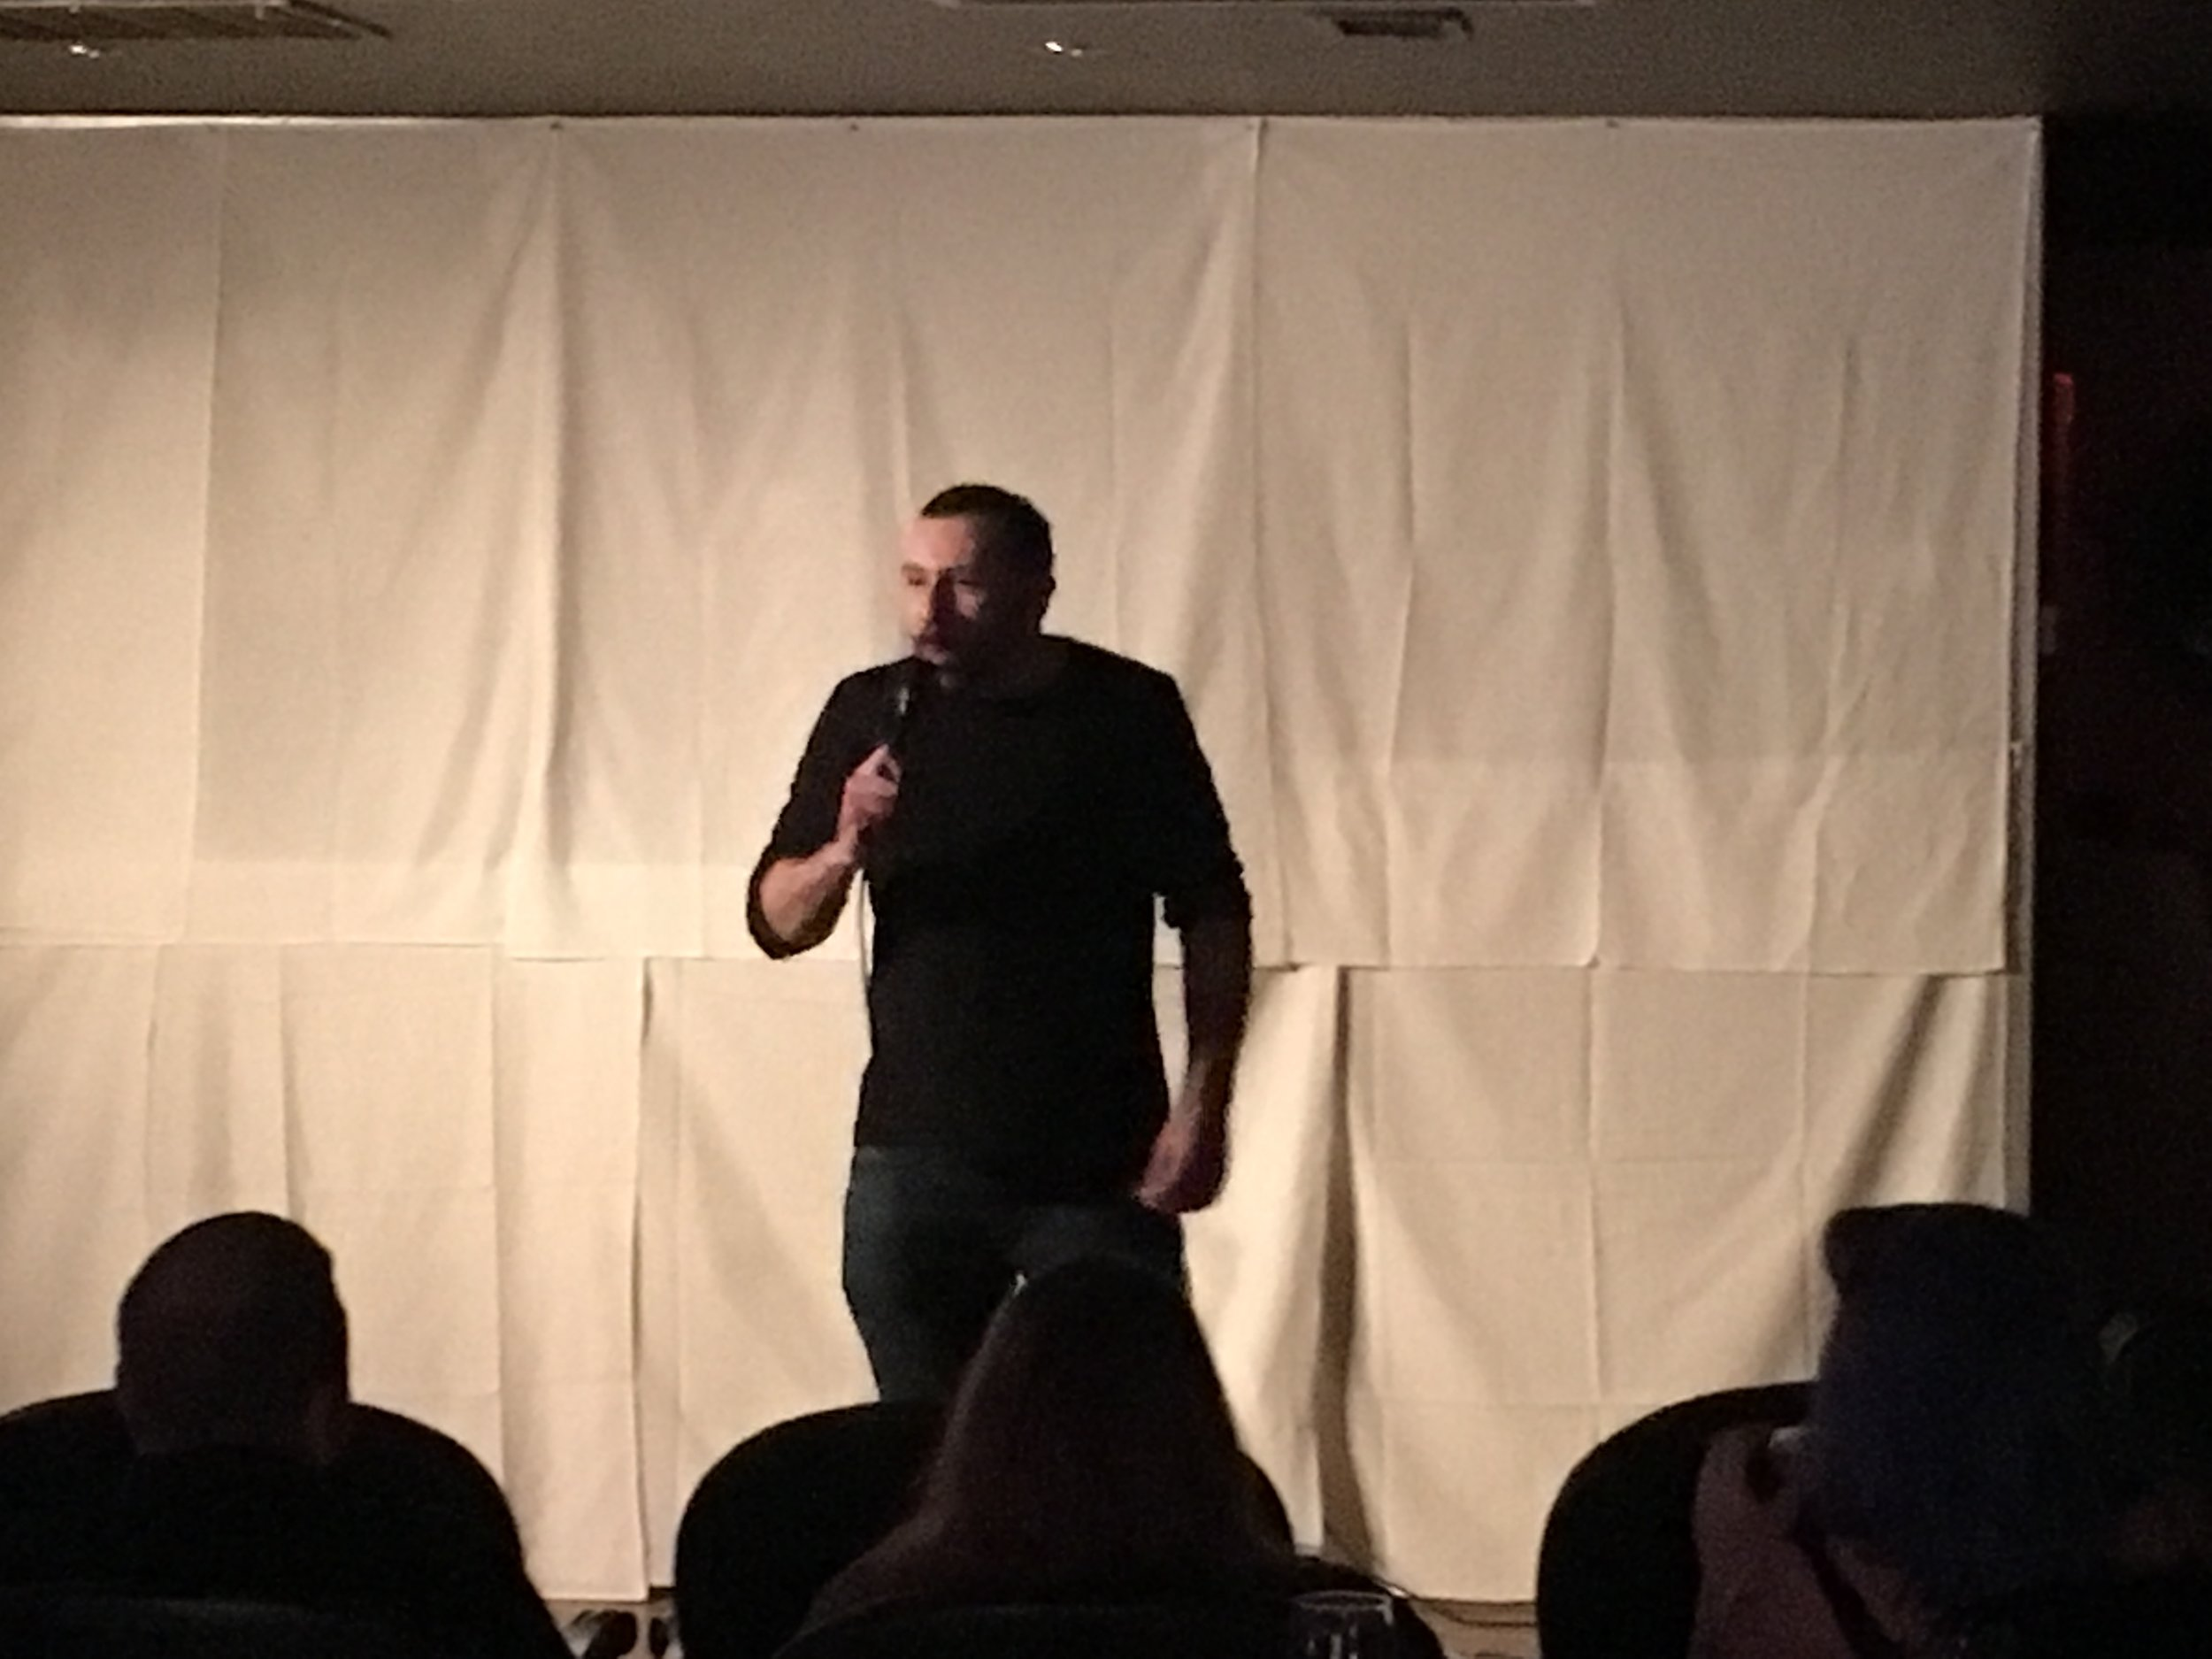 Altano headlining the shit out of his last show.